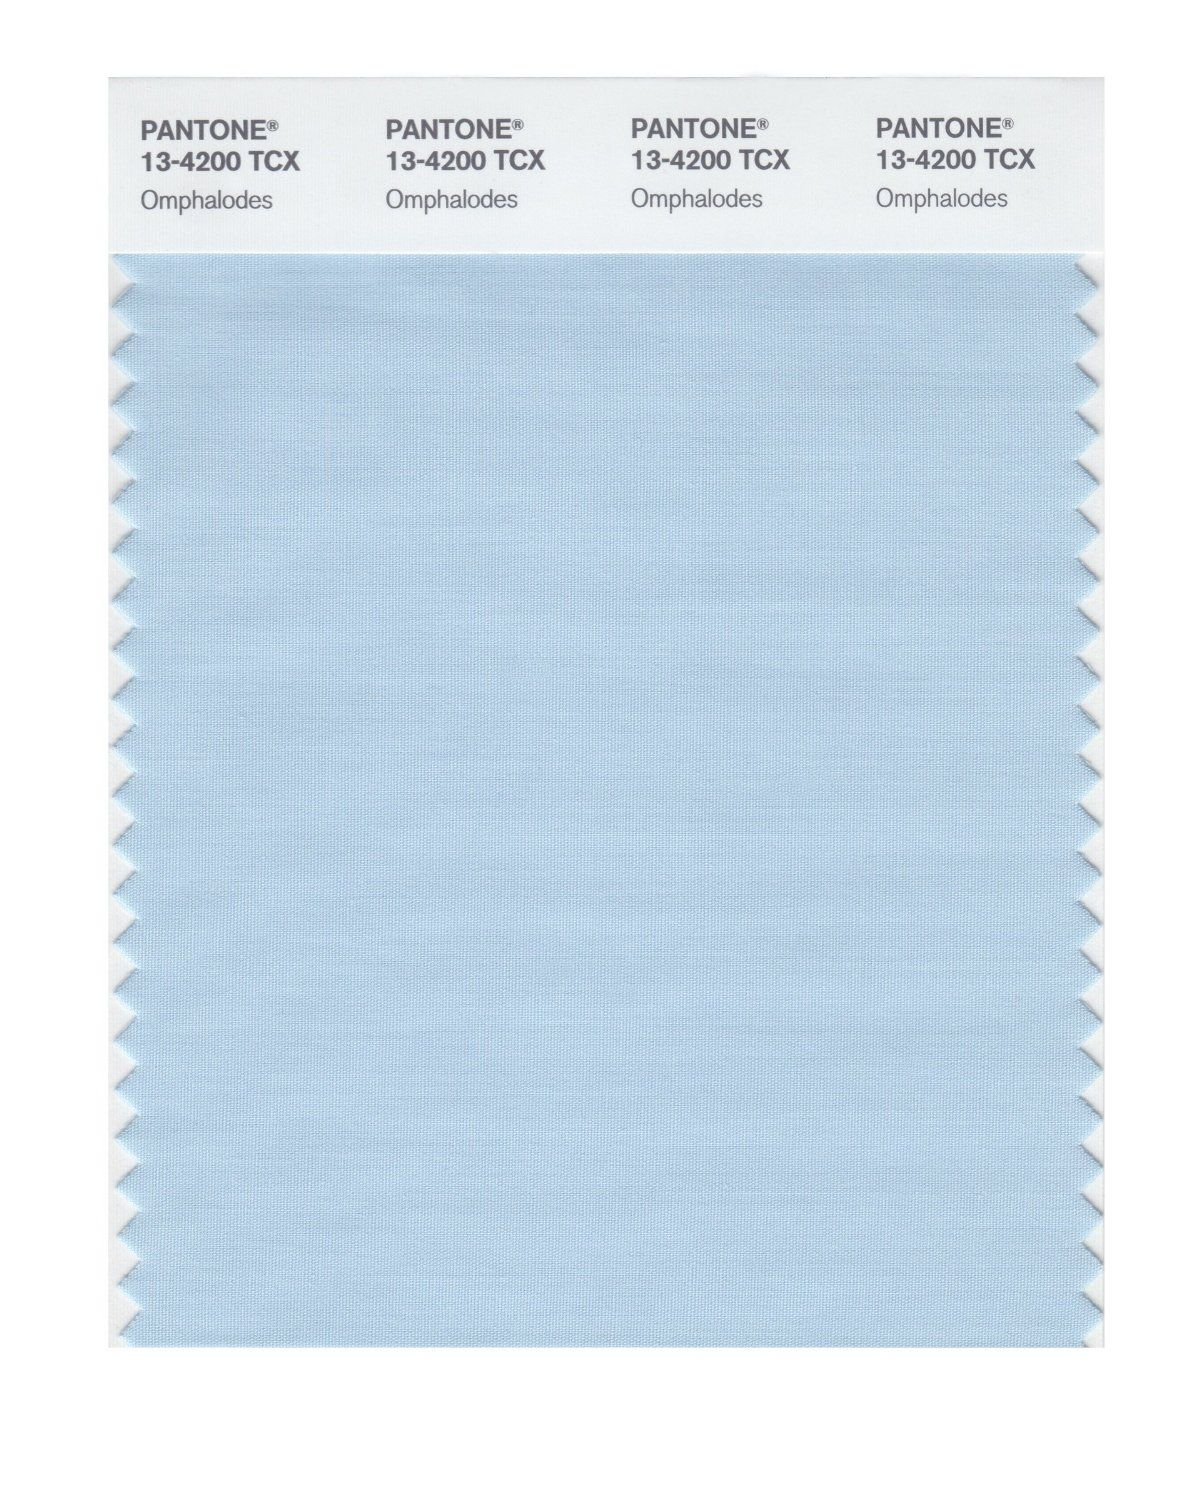 Pantone Color 2016 Pantone 13 4200 Tpx Google Search Color Trend 2016 Pantone